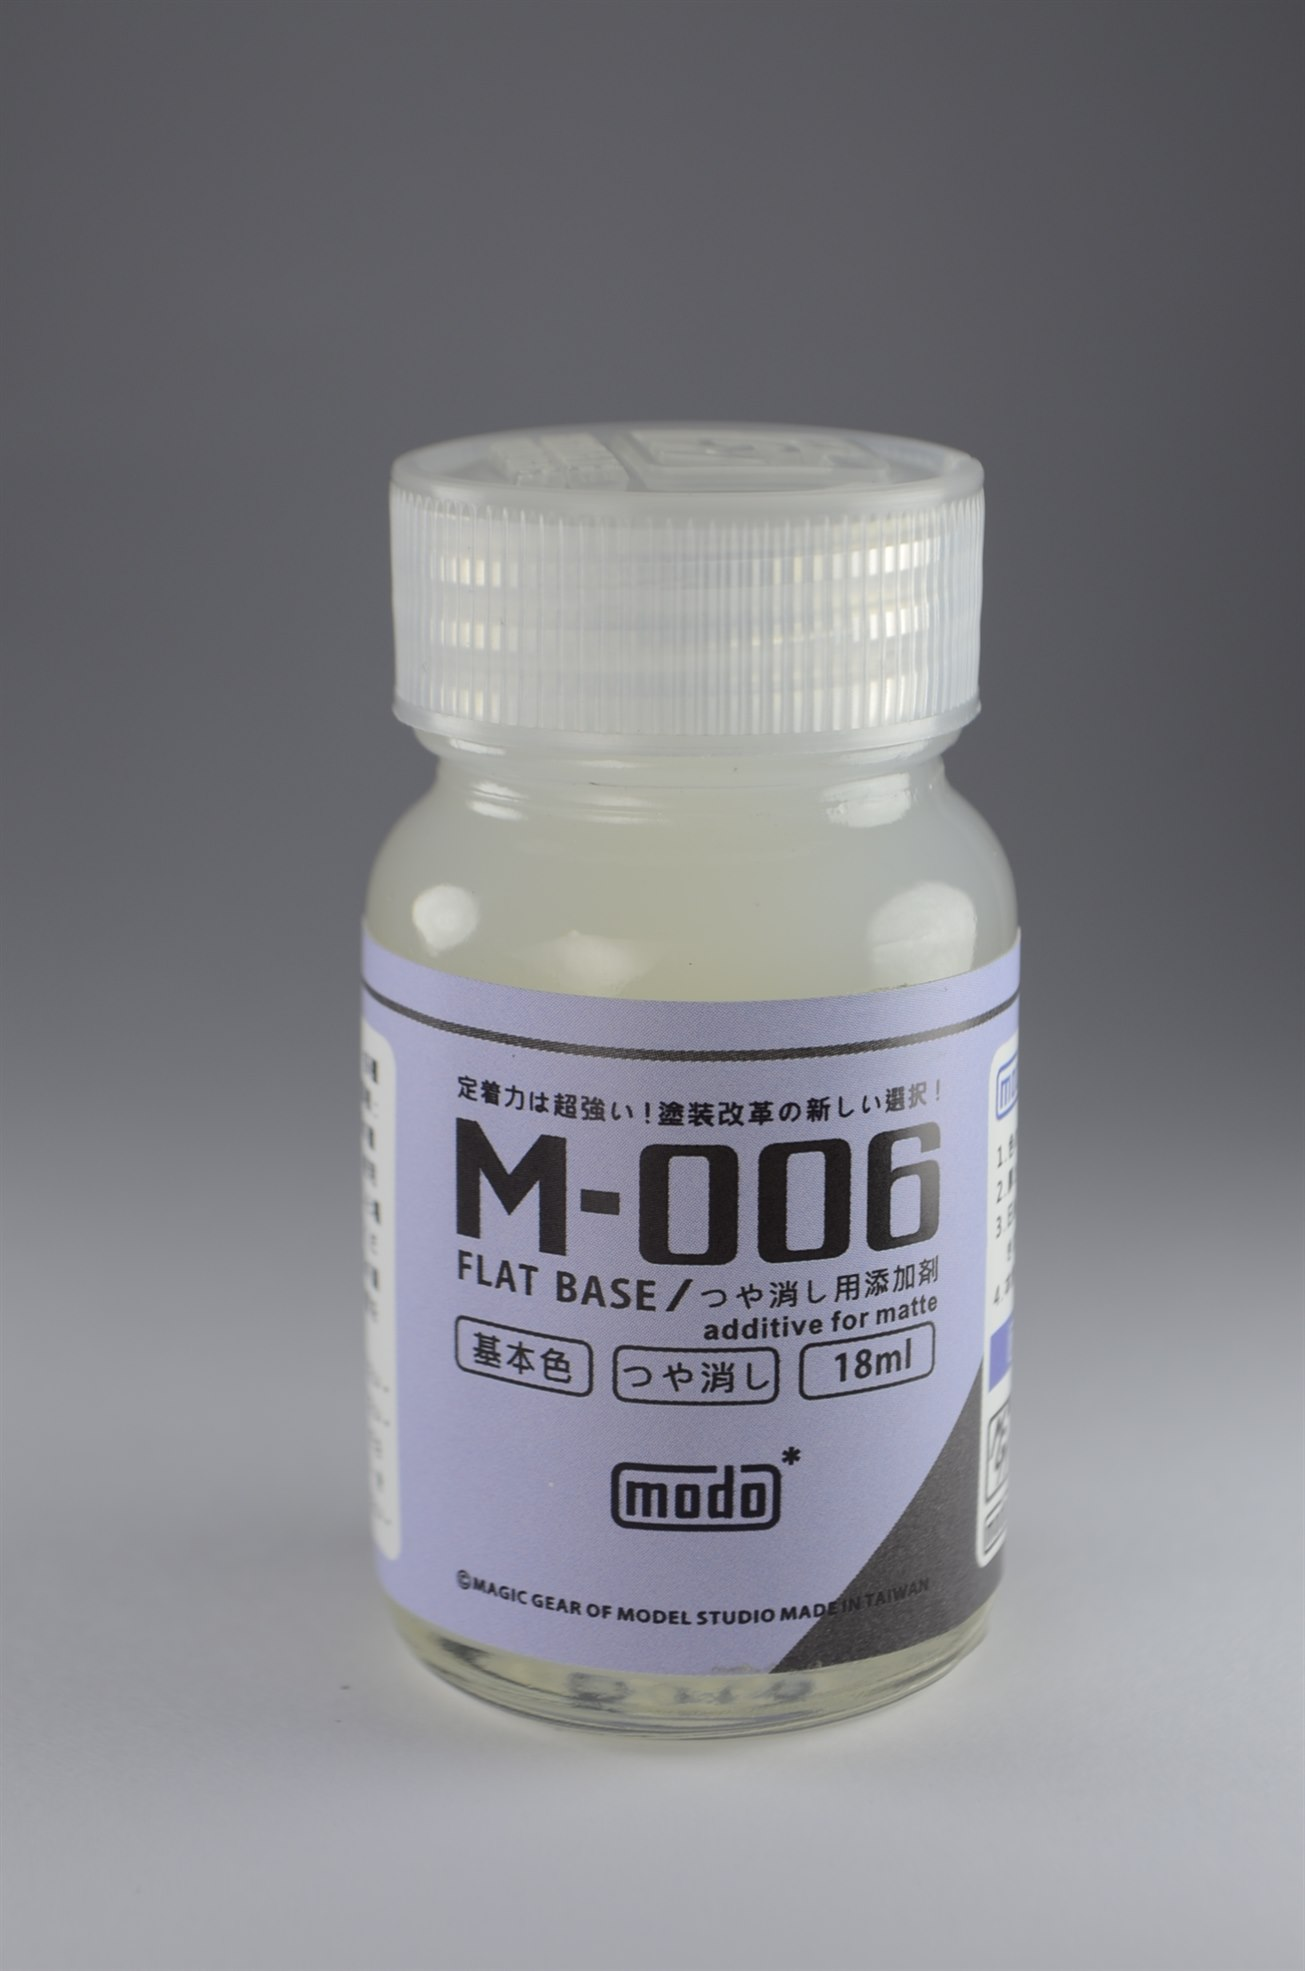 MODO Flat Coat M-006 18ML